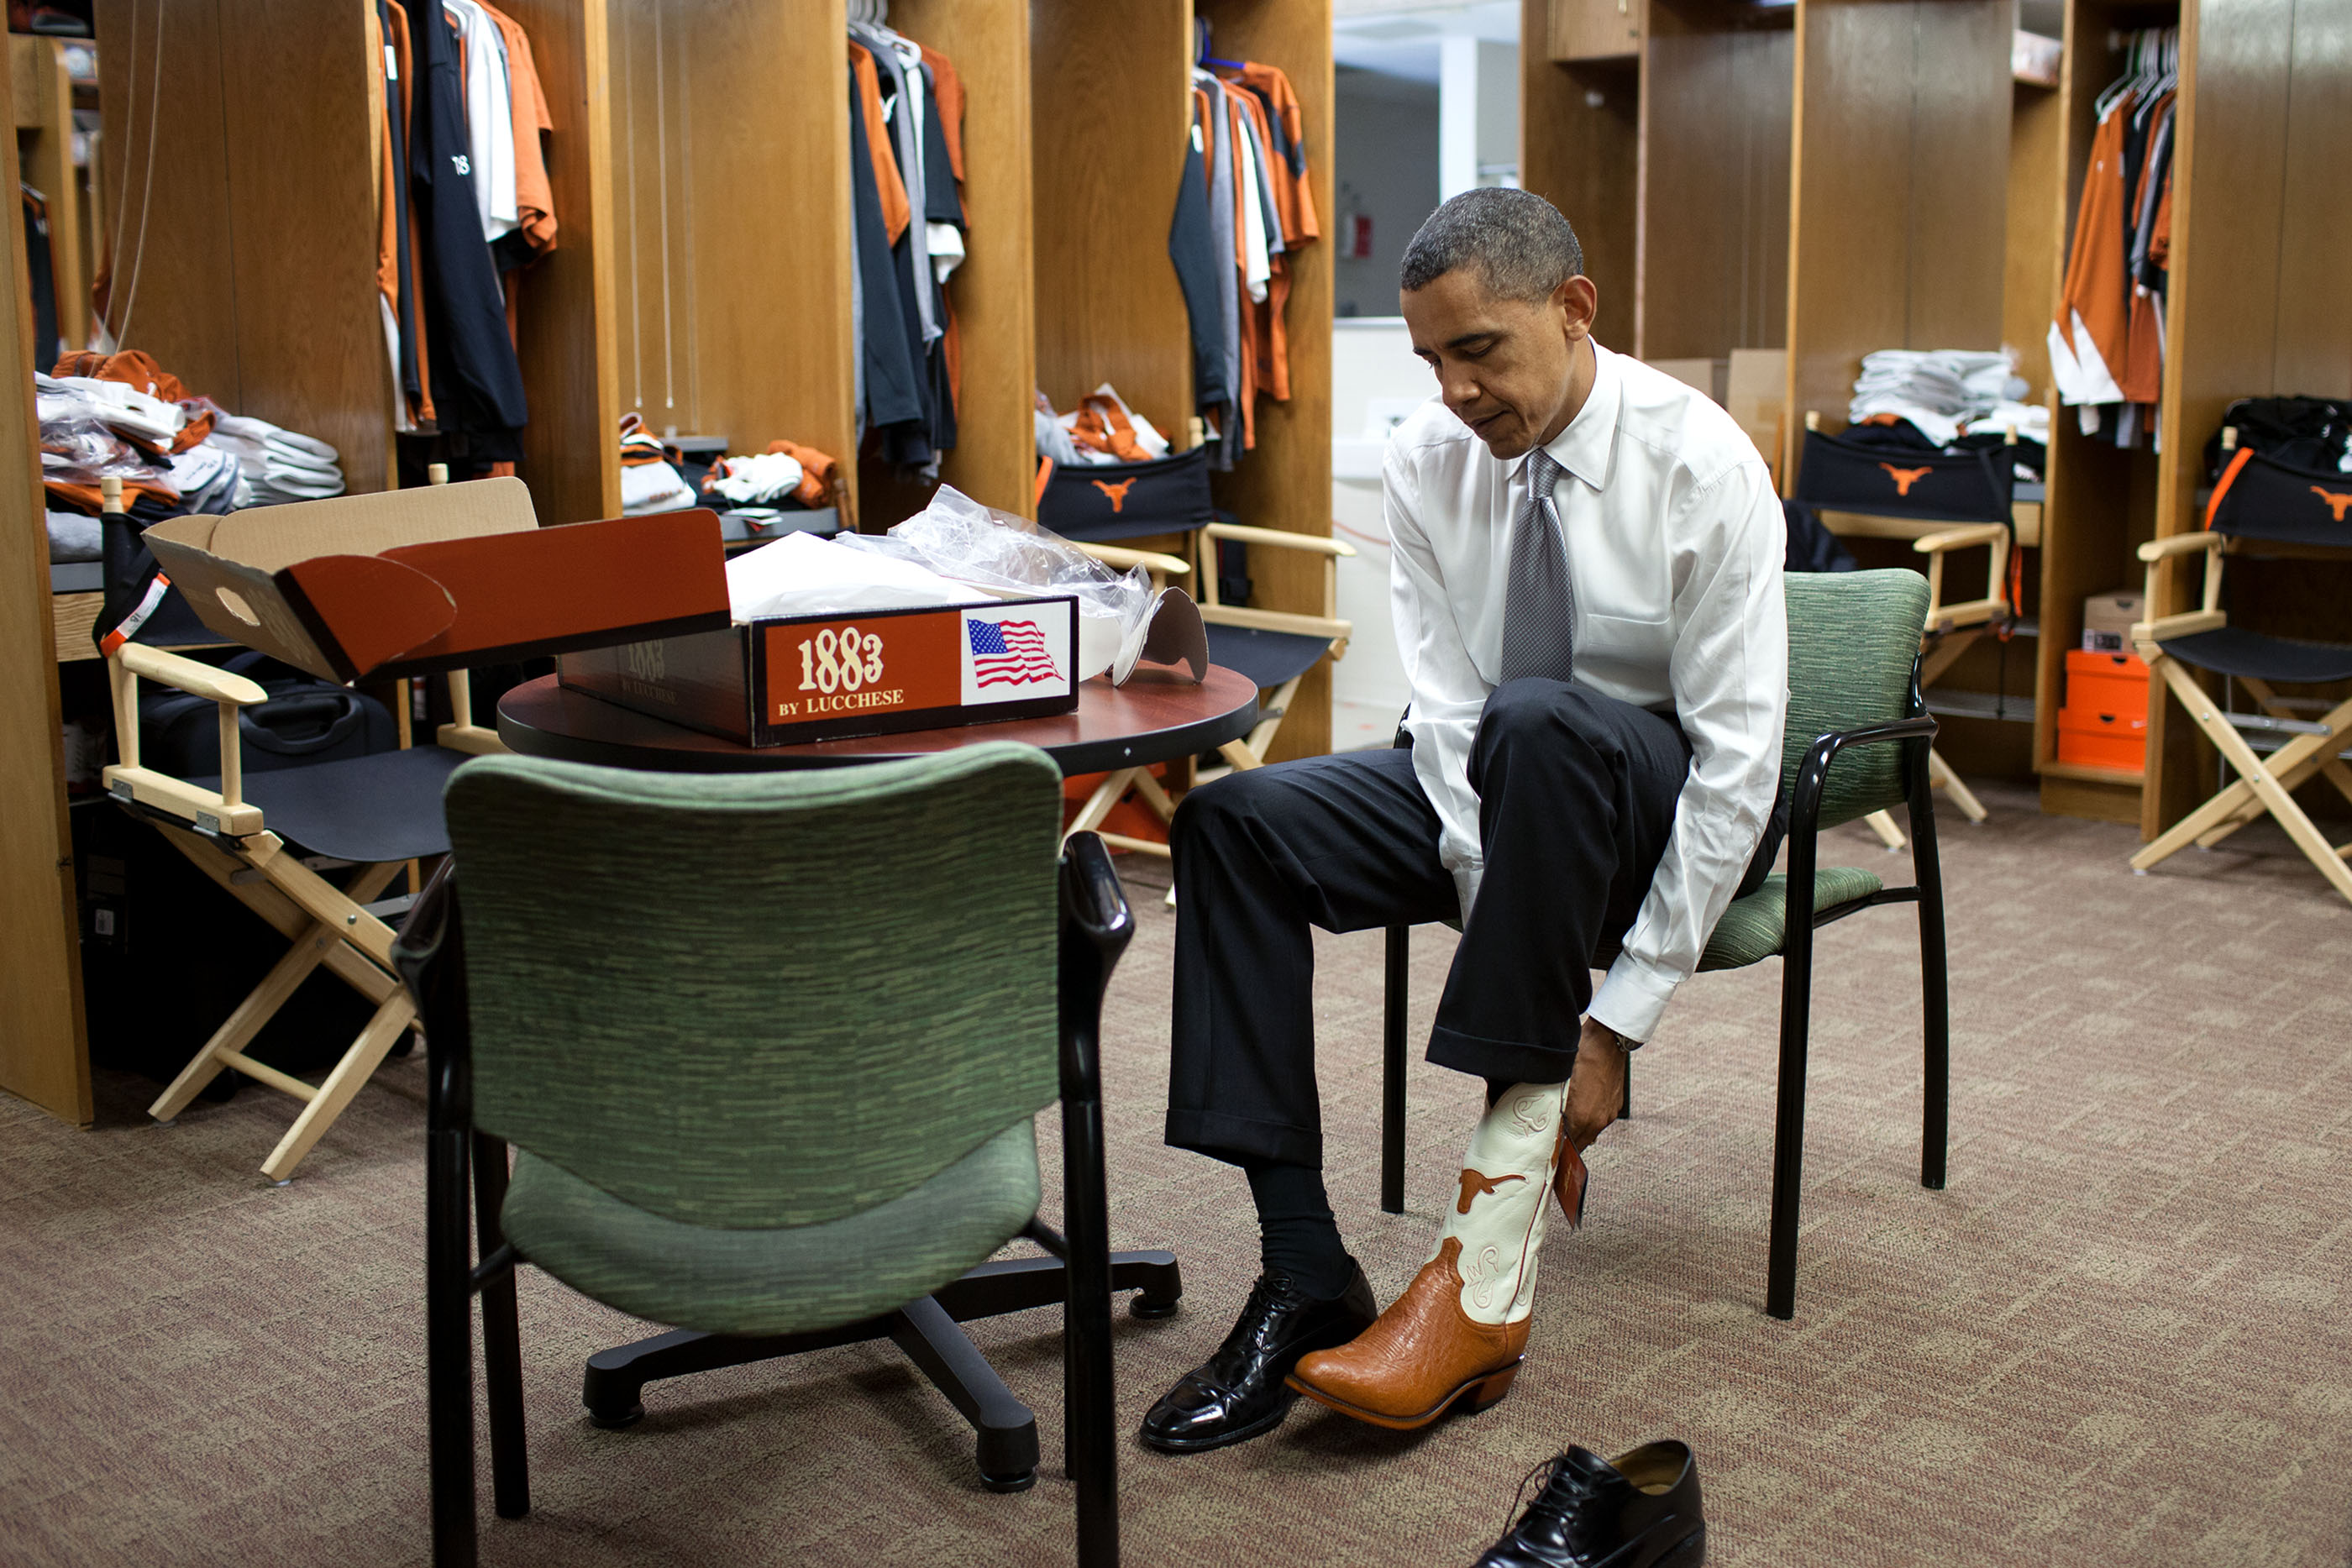 Texas, Aug. 9, 2010. Trying on a pair of cowboy boots at the University of Texas in Austin. (Official White House Photo by Pete Souza)